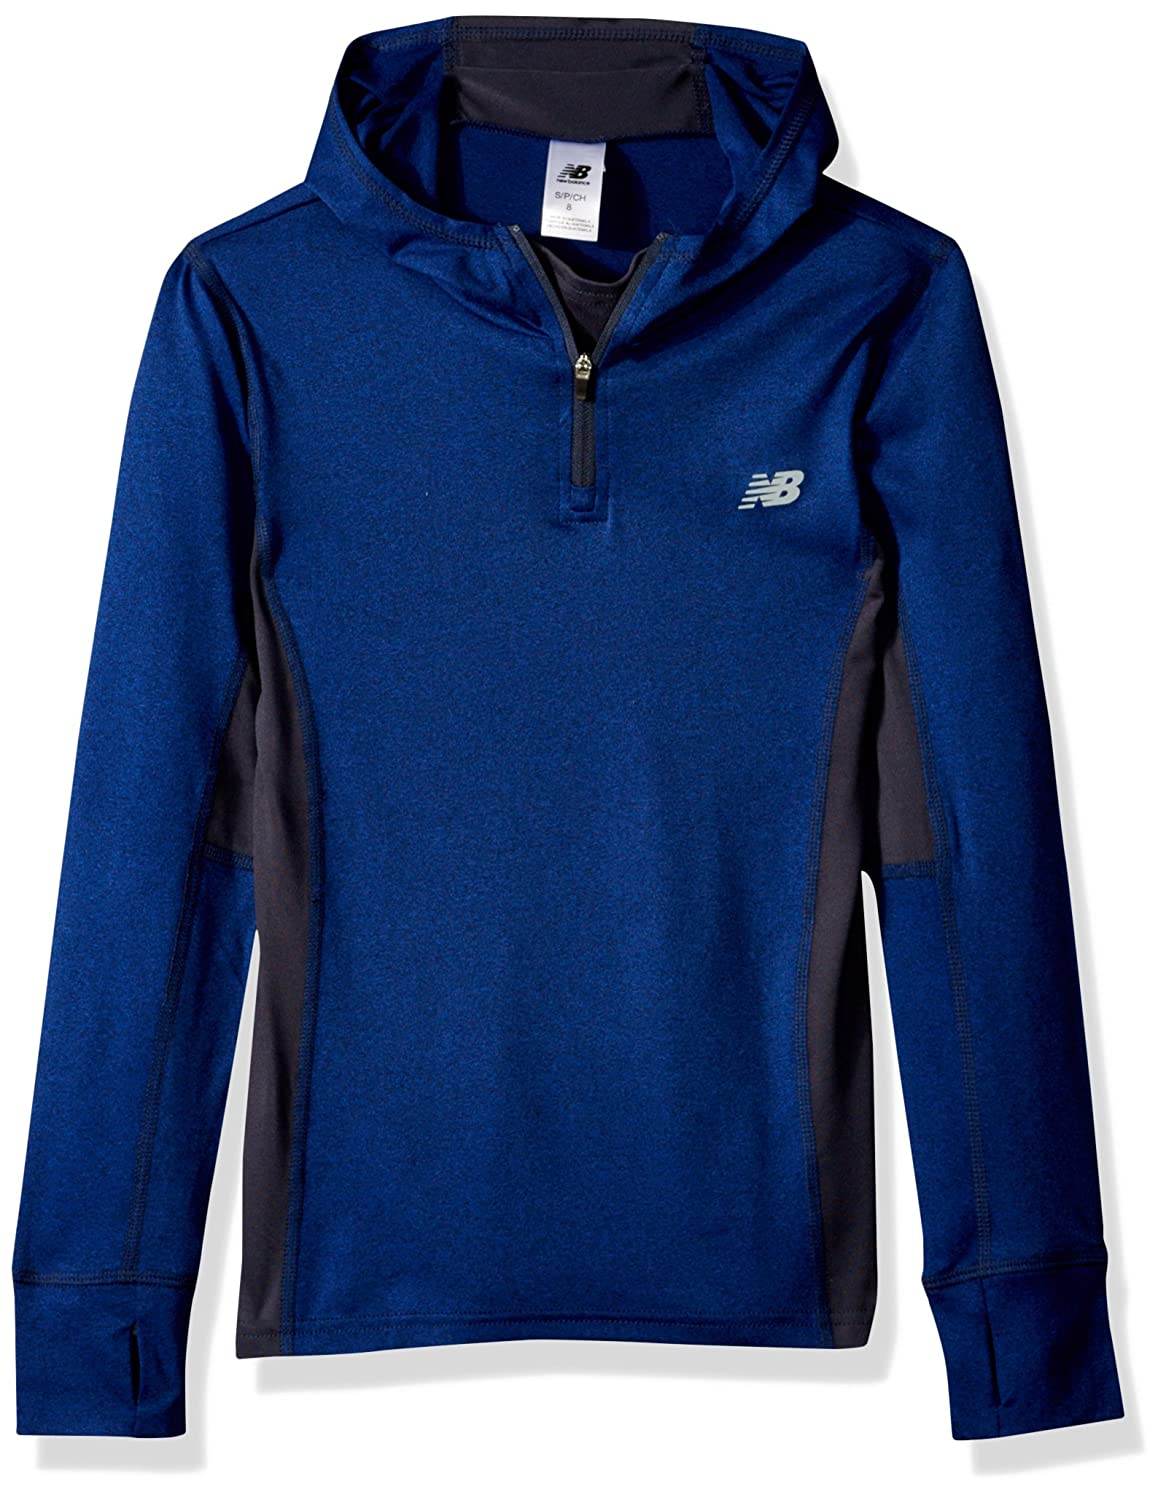 New Balance Kids Girls' Big Athletic Hooded Pullover Top